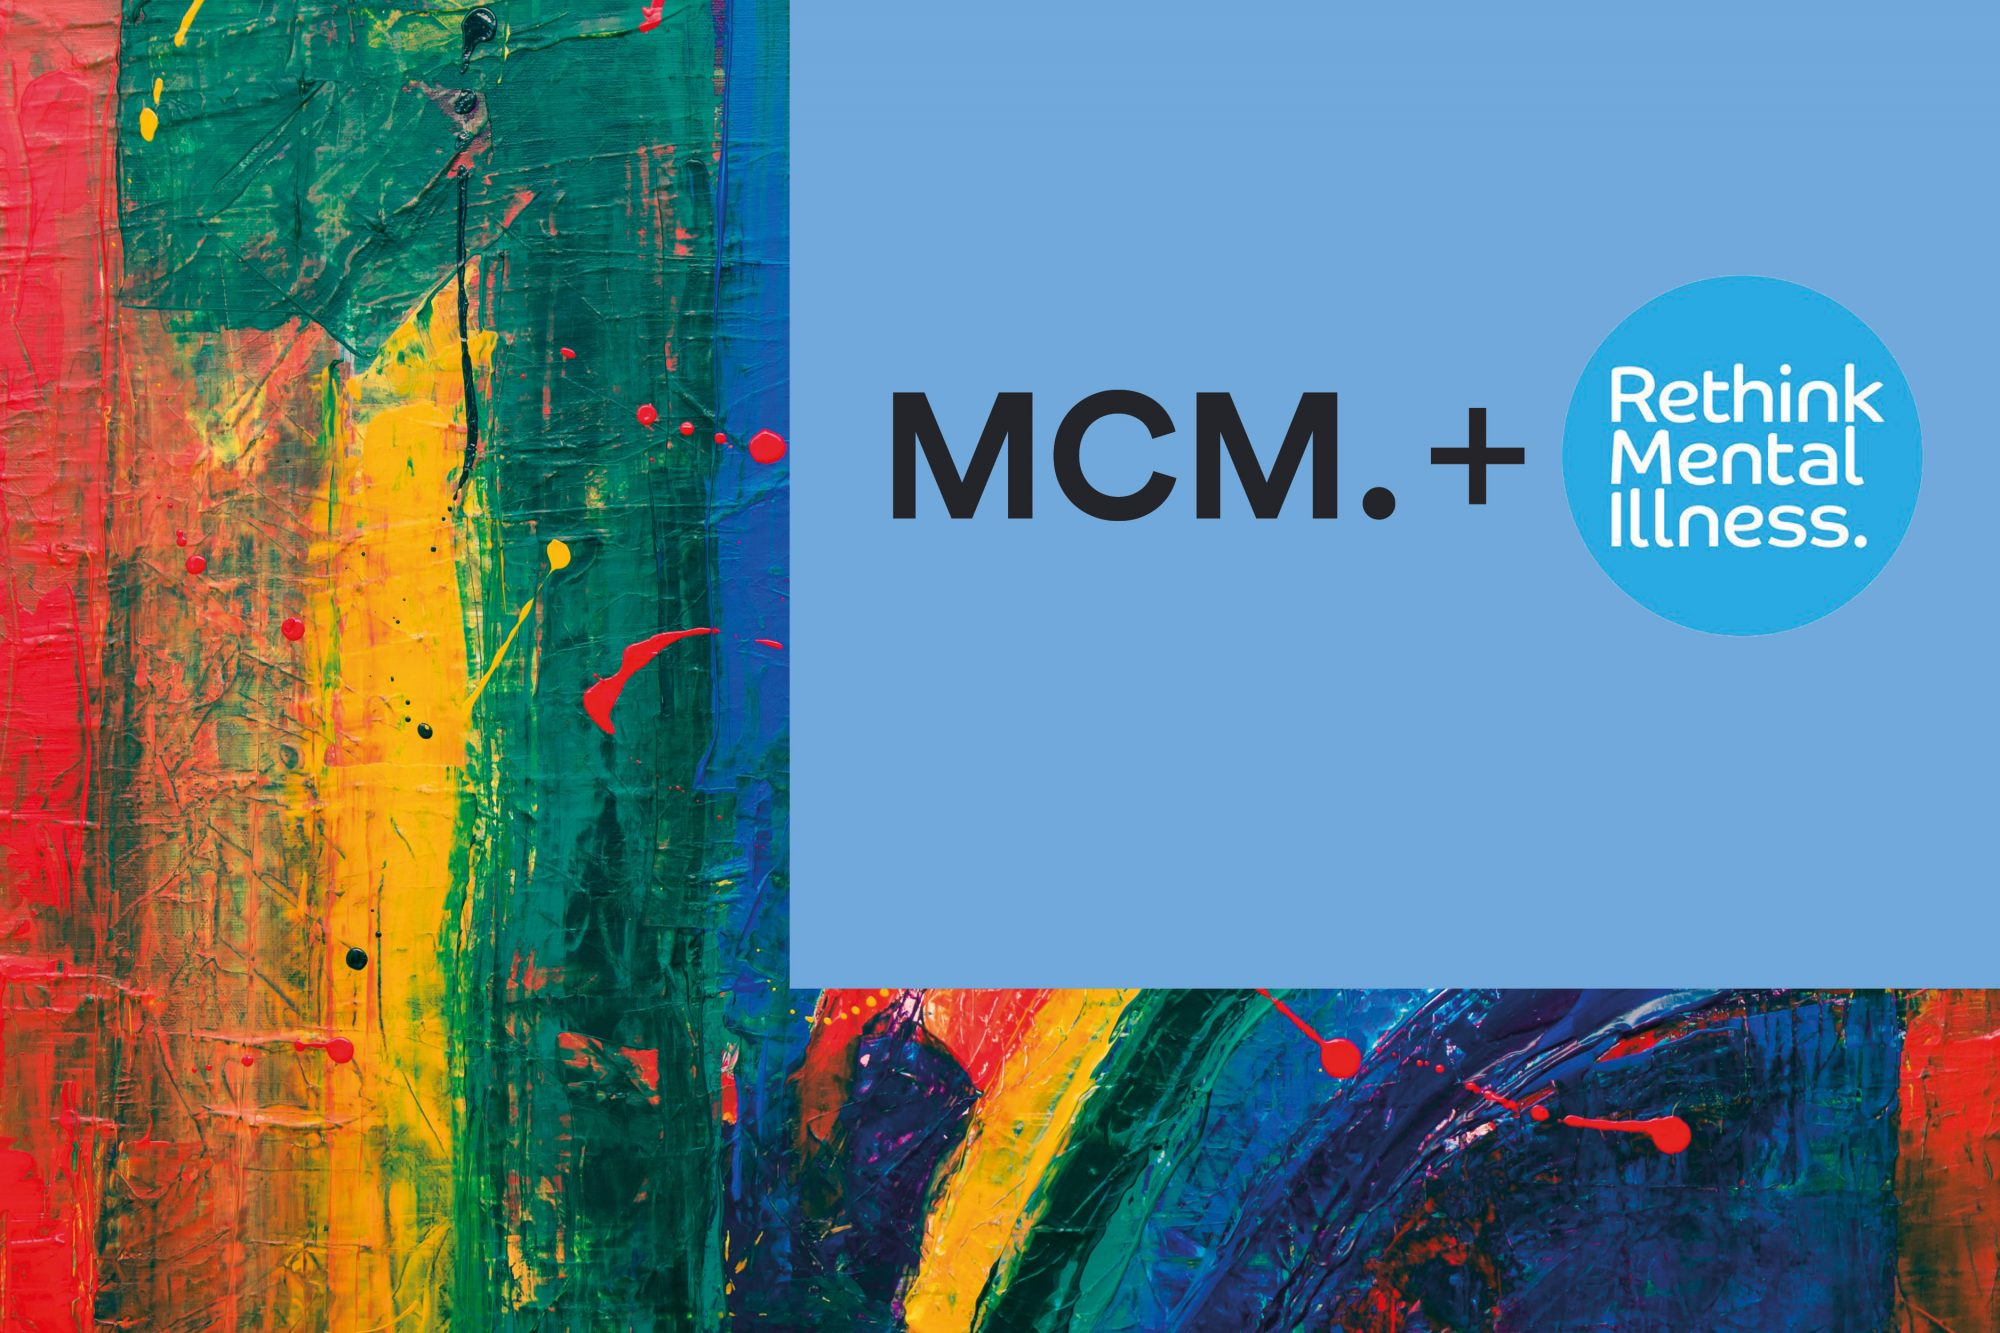 MCM partnership with Rethink Mental Illness